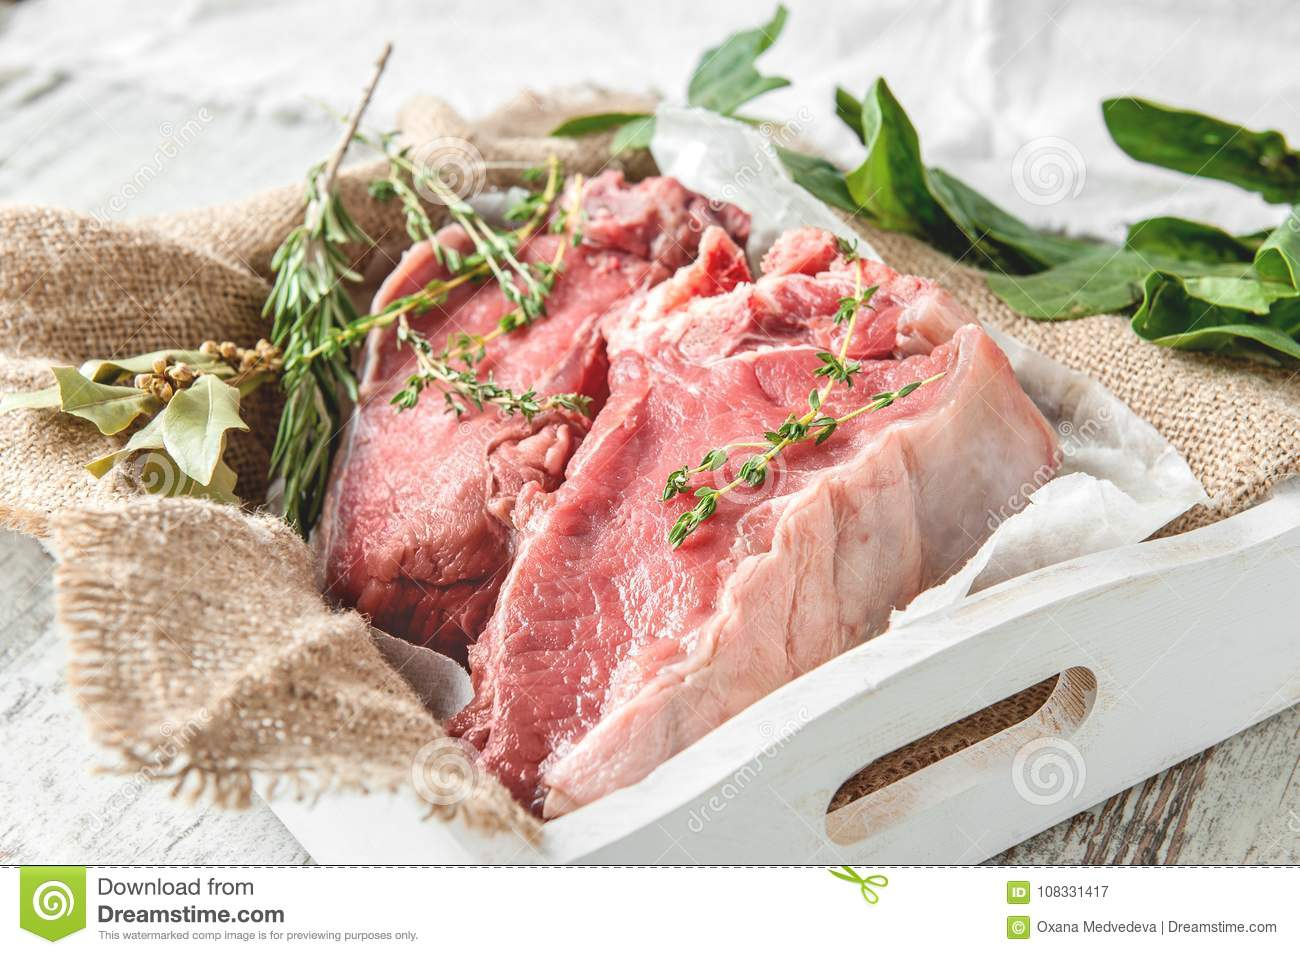 Cuts of beef for grilling on a wooden cutting Board with spinach, rosemary and Provencal herbs for the marinade in a rustic style.